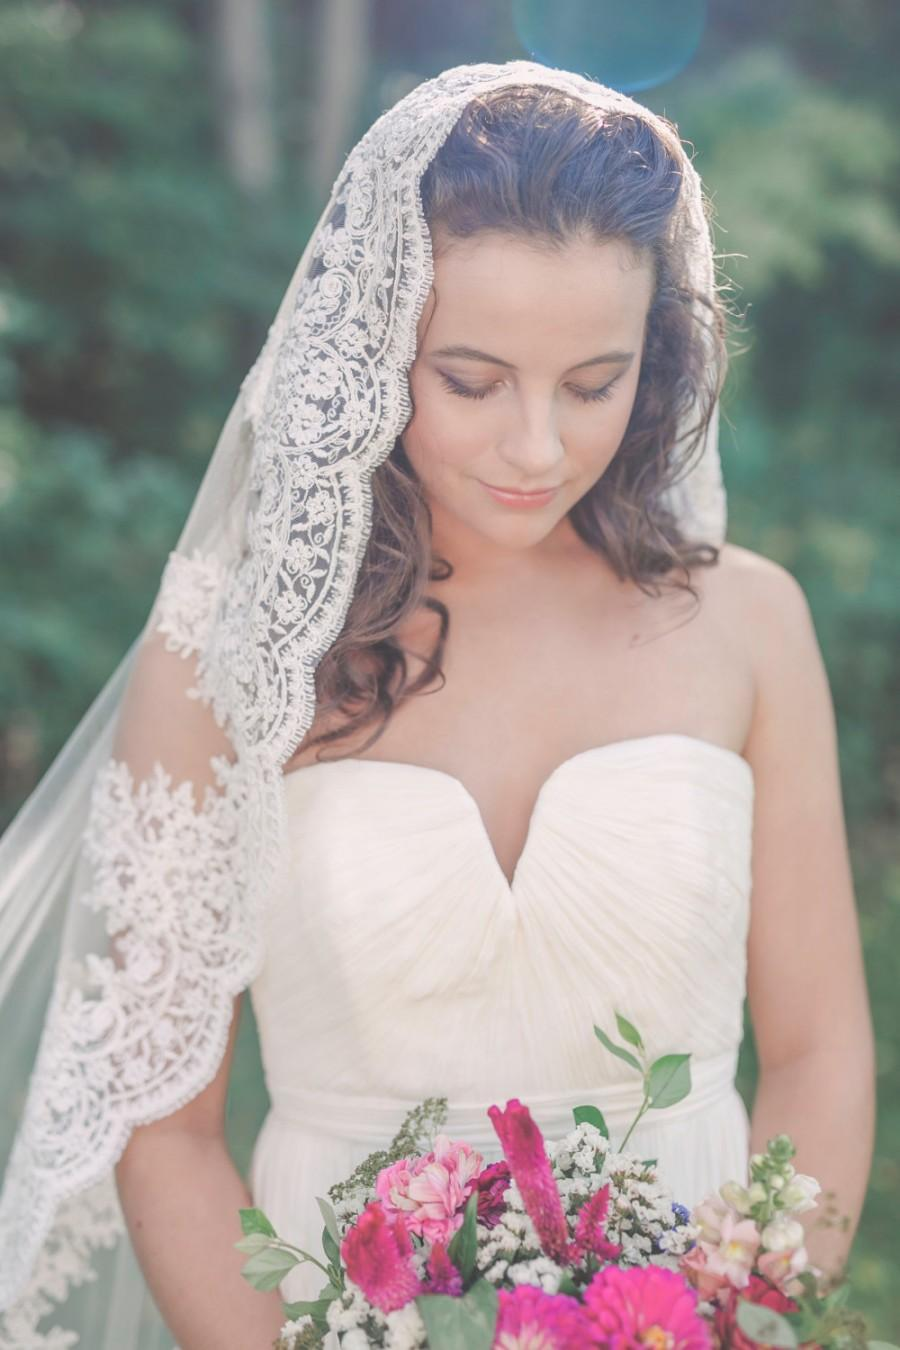 Mariage - chapel length mantilla veil, lace mantilla veil, lace mantilla, lace wedding veil, lace bridal veil, mantilla with lace - SAVANNAH